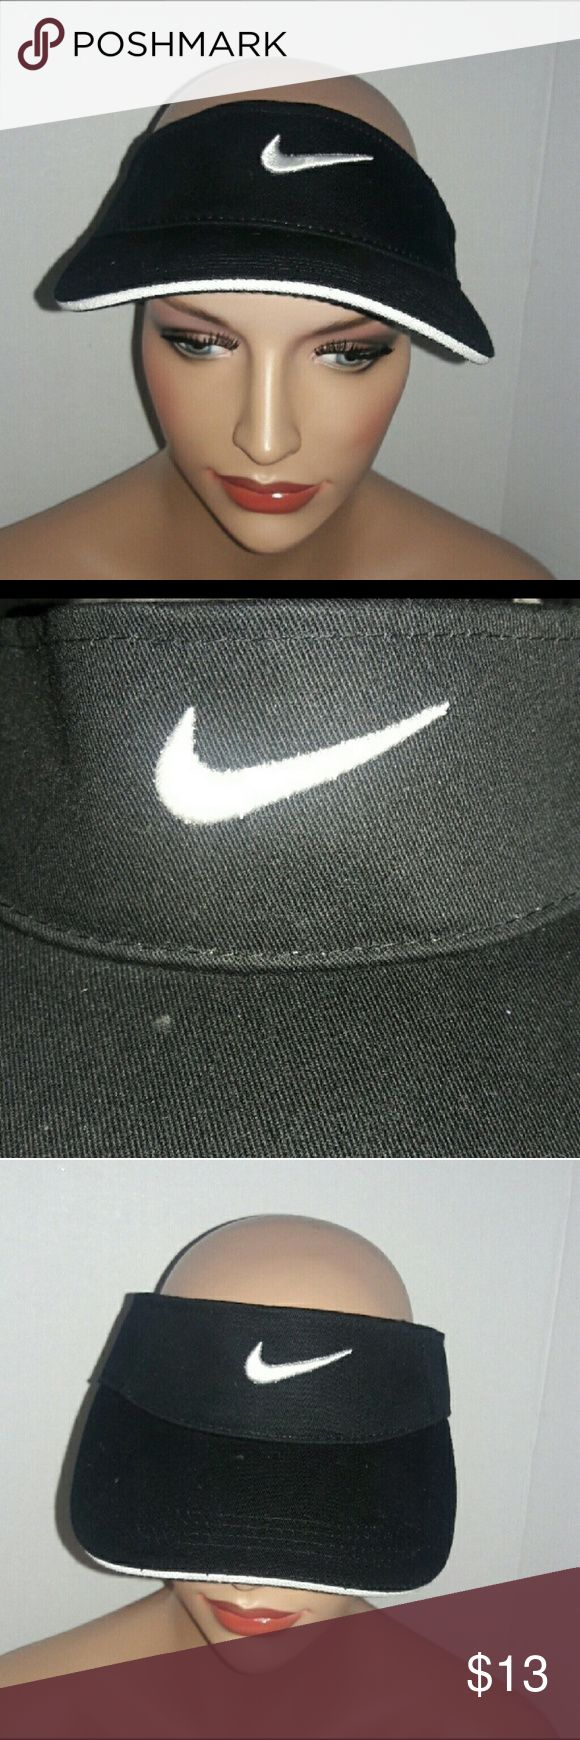 Nike Visor Hat Cap Adjustable Velcro Nike Visor Hat Cap Adjustable Velcro  Color ~ Black and White  One Size fits most.  Please feel free to make an offer. Nike Accessories Hats